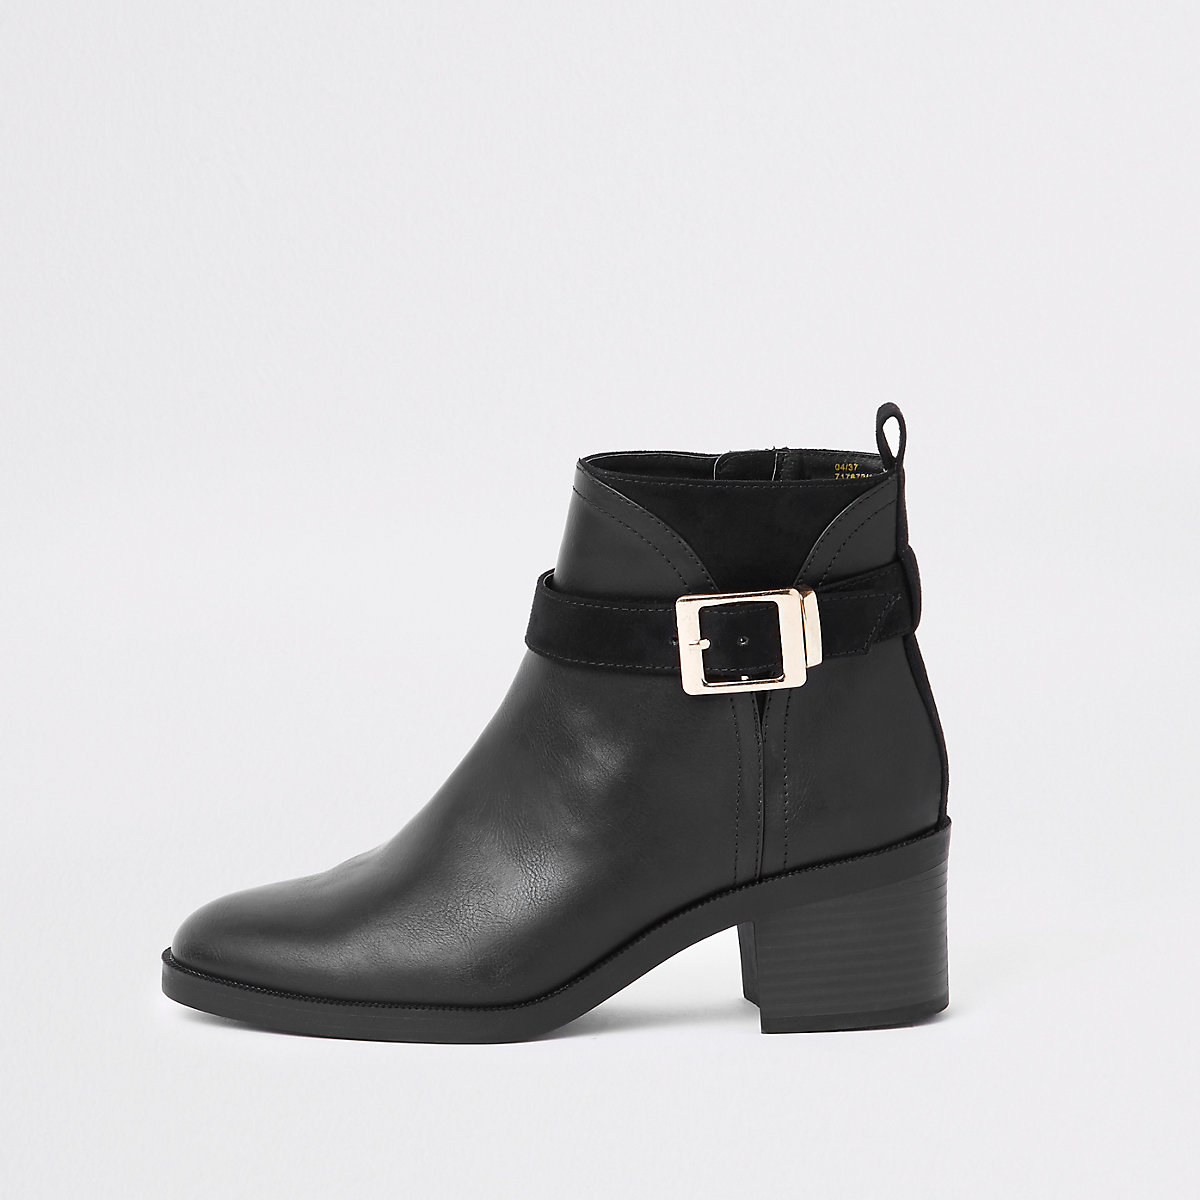 Black buckle detail ankle boots